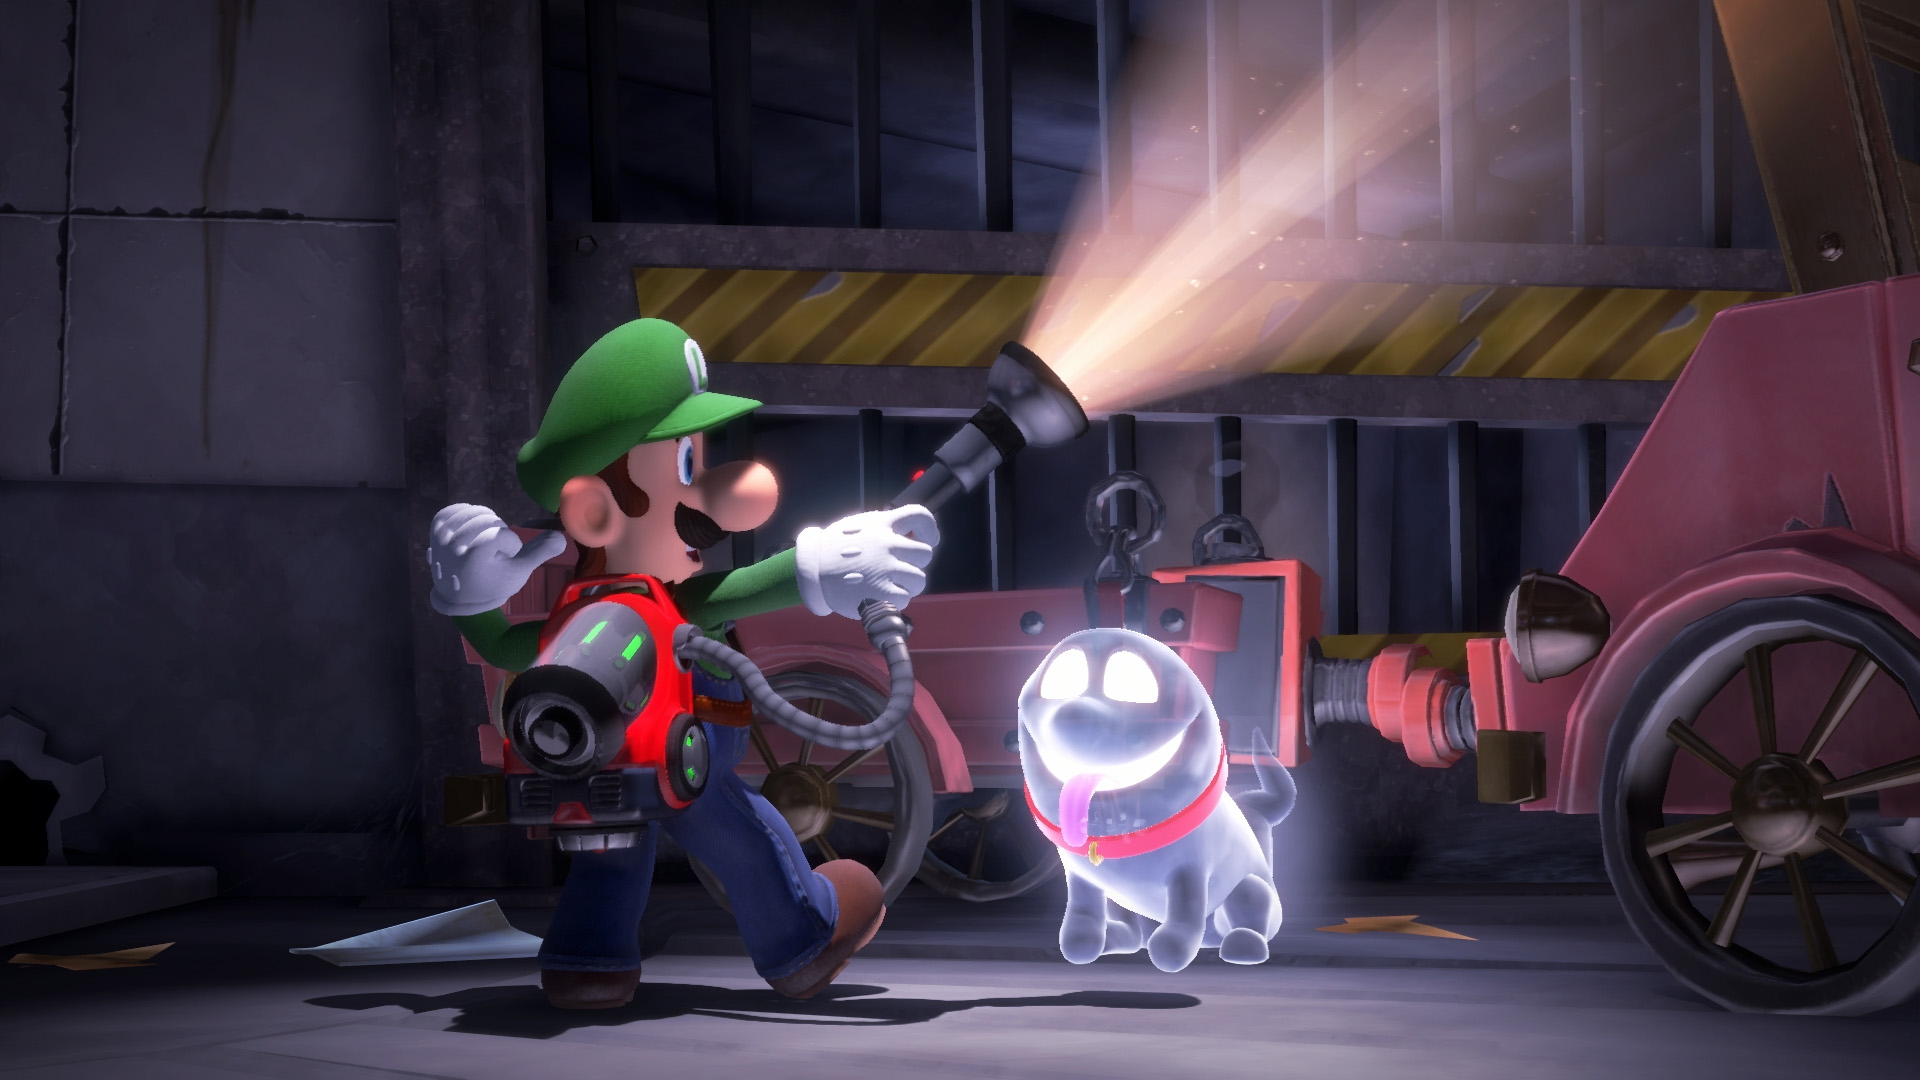 £8 off Luigi's Mansion 3 is a Nintendo Switch games deal even Scrooge could love